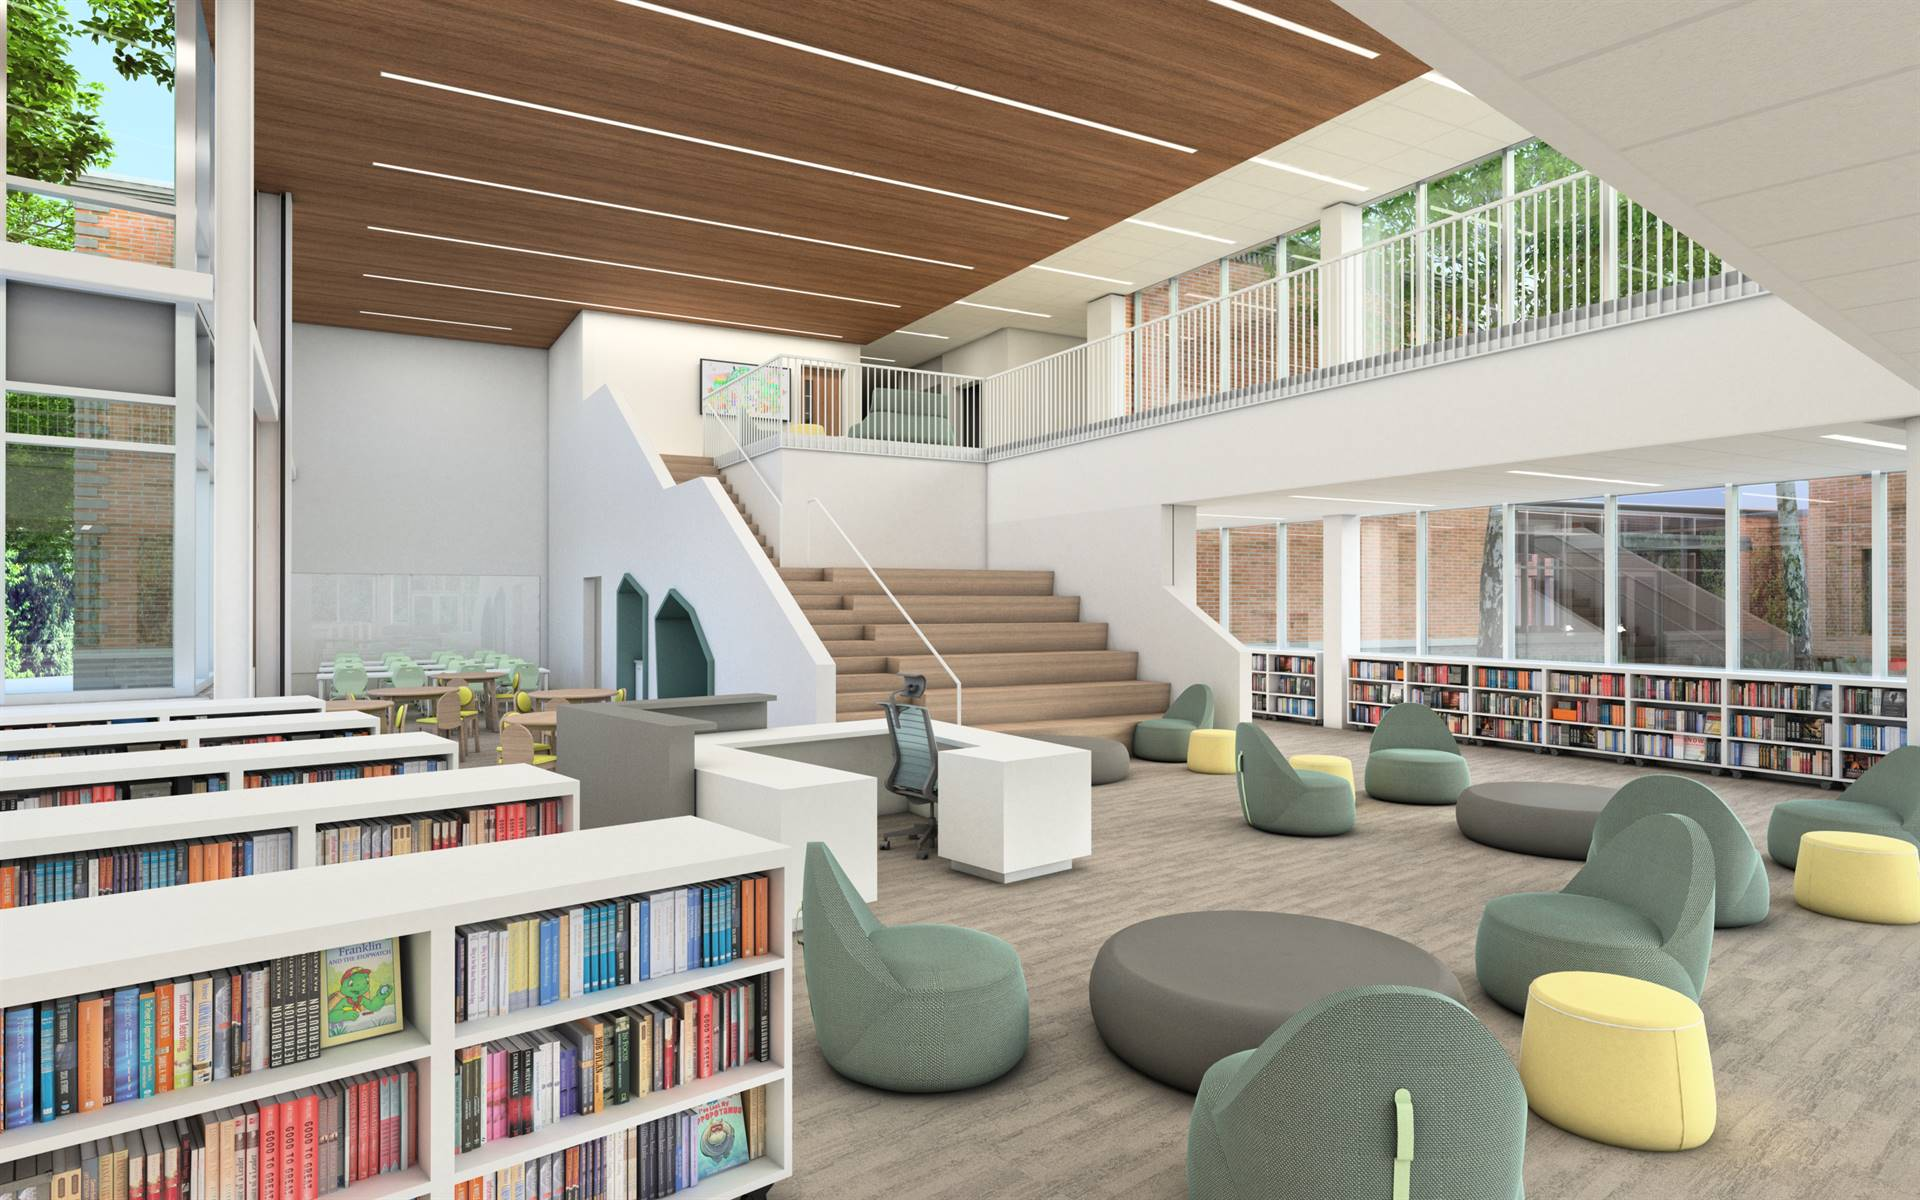 An interior view of the new media center, with a learning staircase and flexible furniture